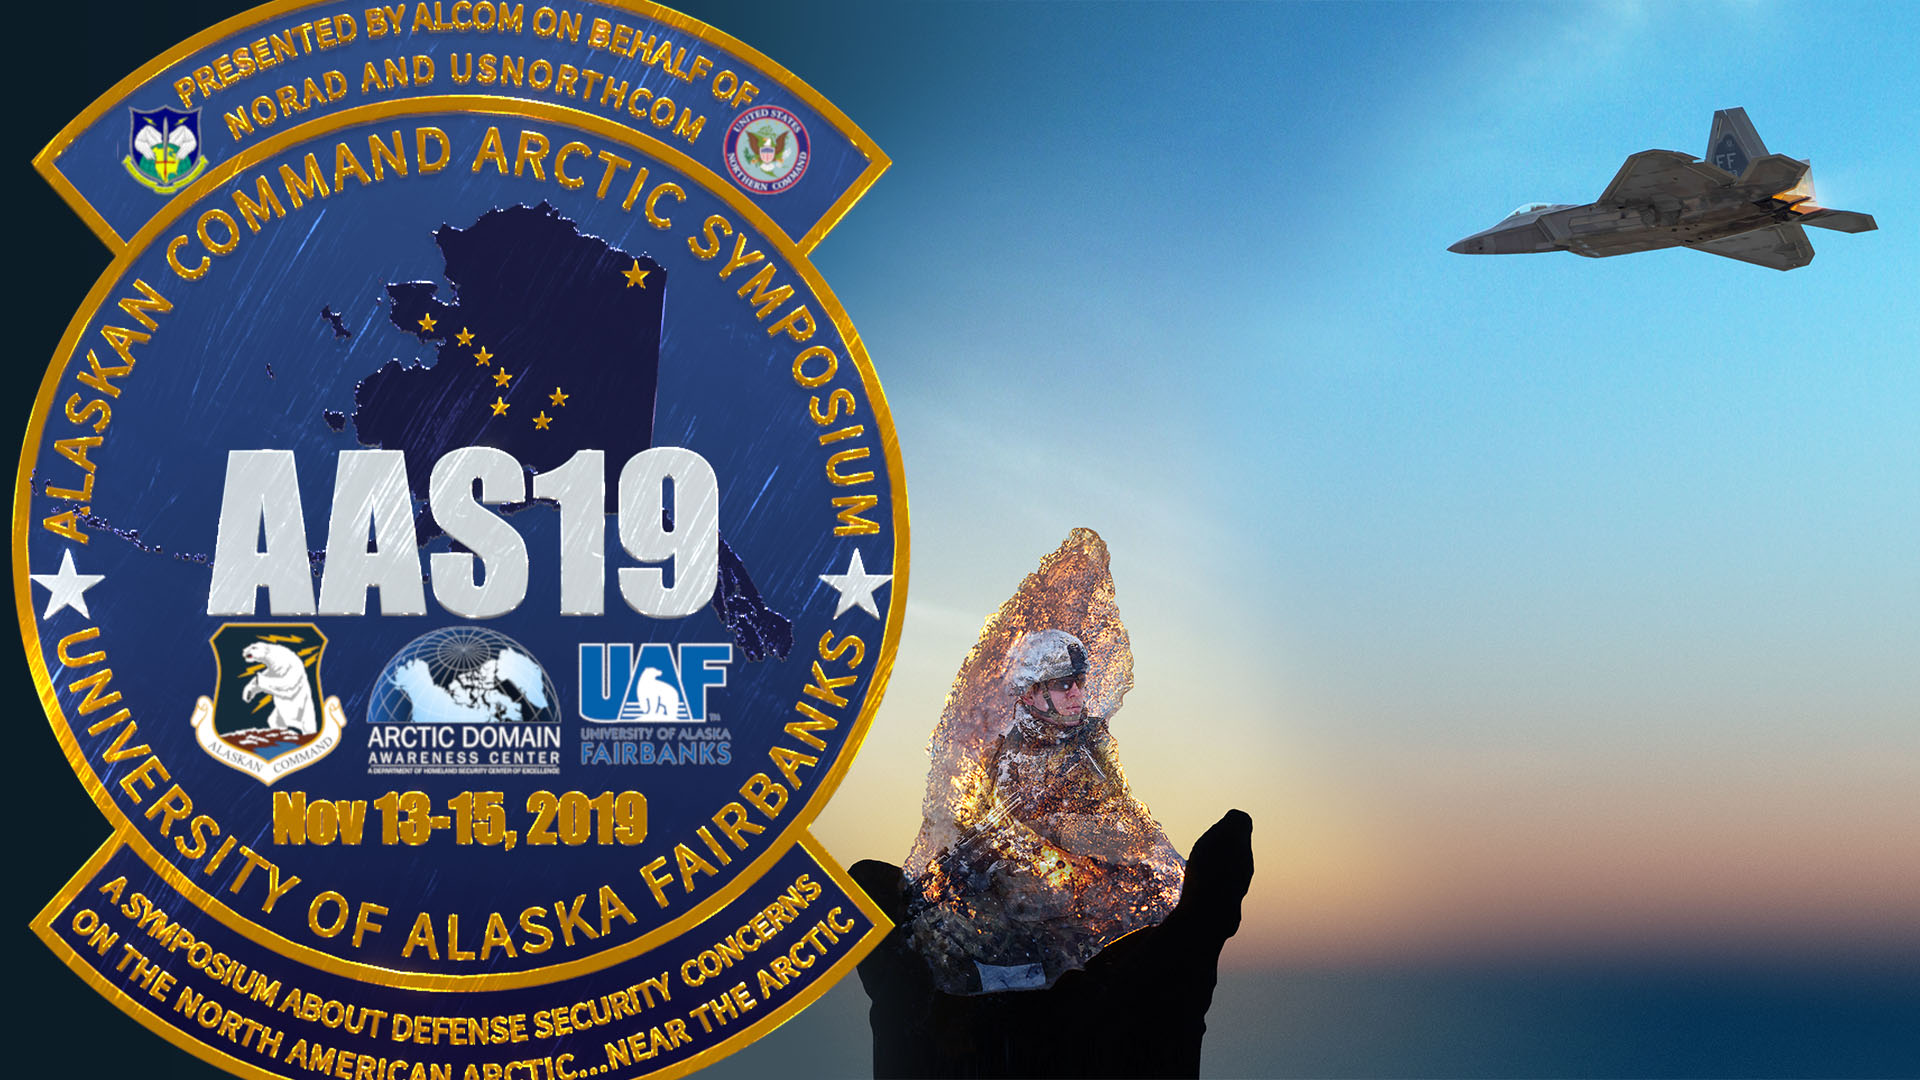 ADAC thumbnail showing AAS19 badge with soldier illuminated in ice and jet juxtaposed against rising sun